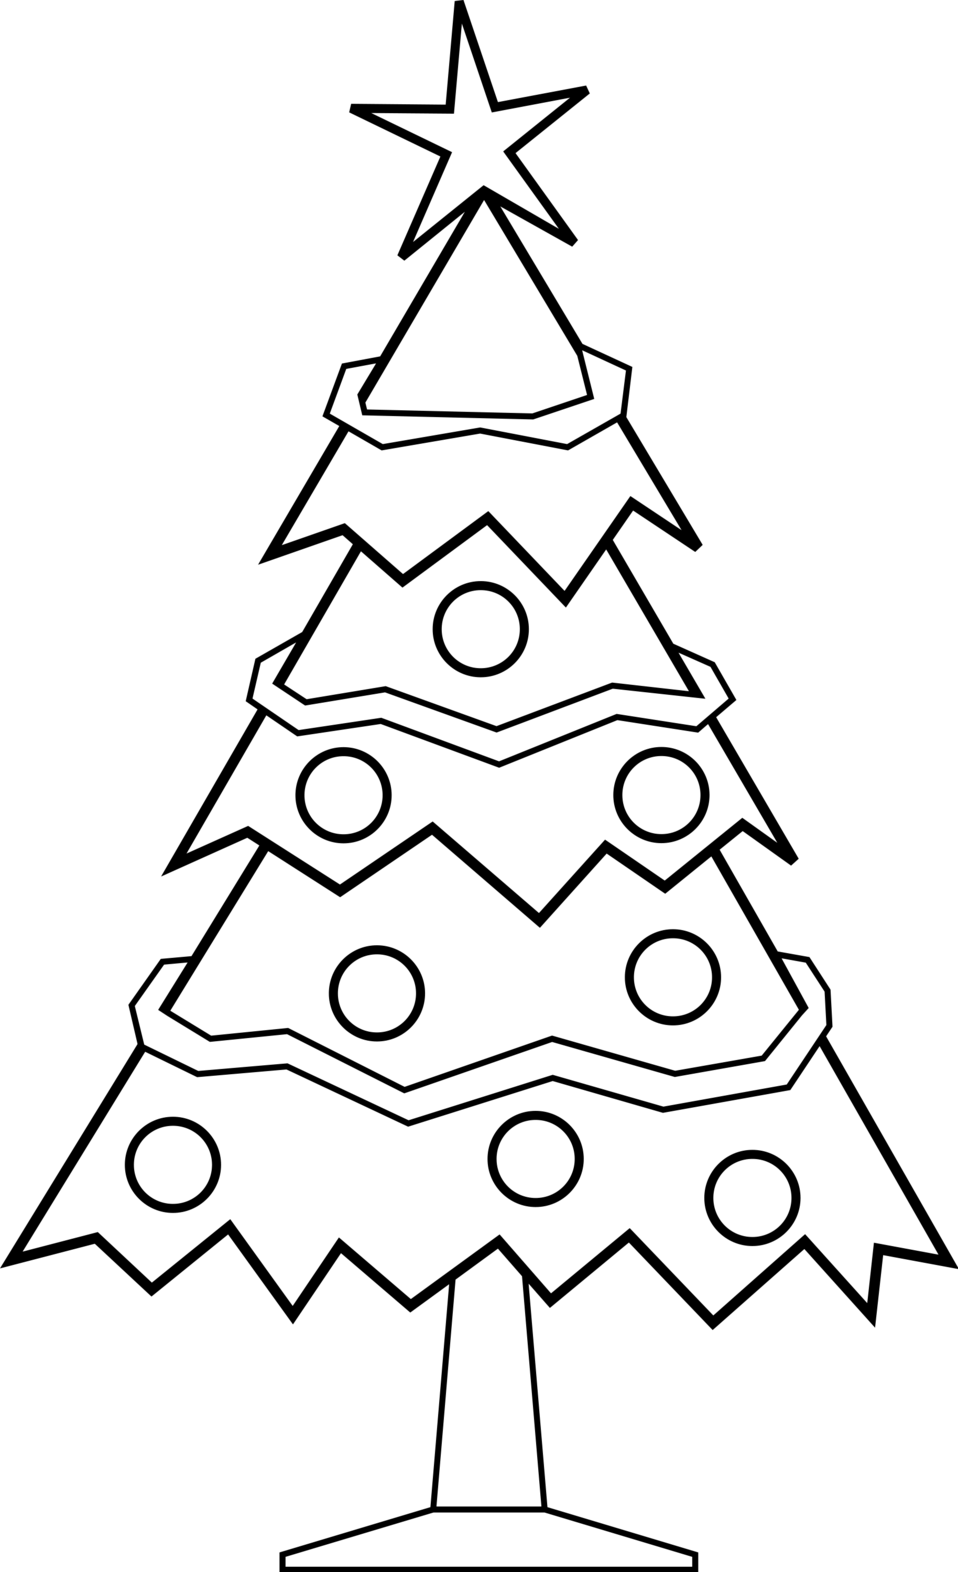 black and white christmas tree drawing at getdrawings com free for rh getdrawings com christmas tree with presents clipart black and white christmas tree clipart black and white